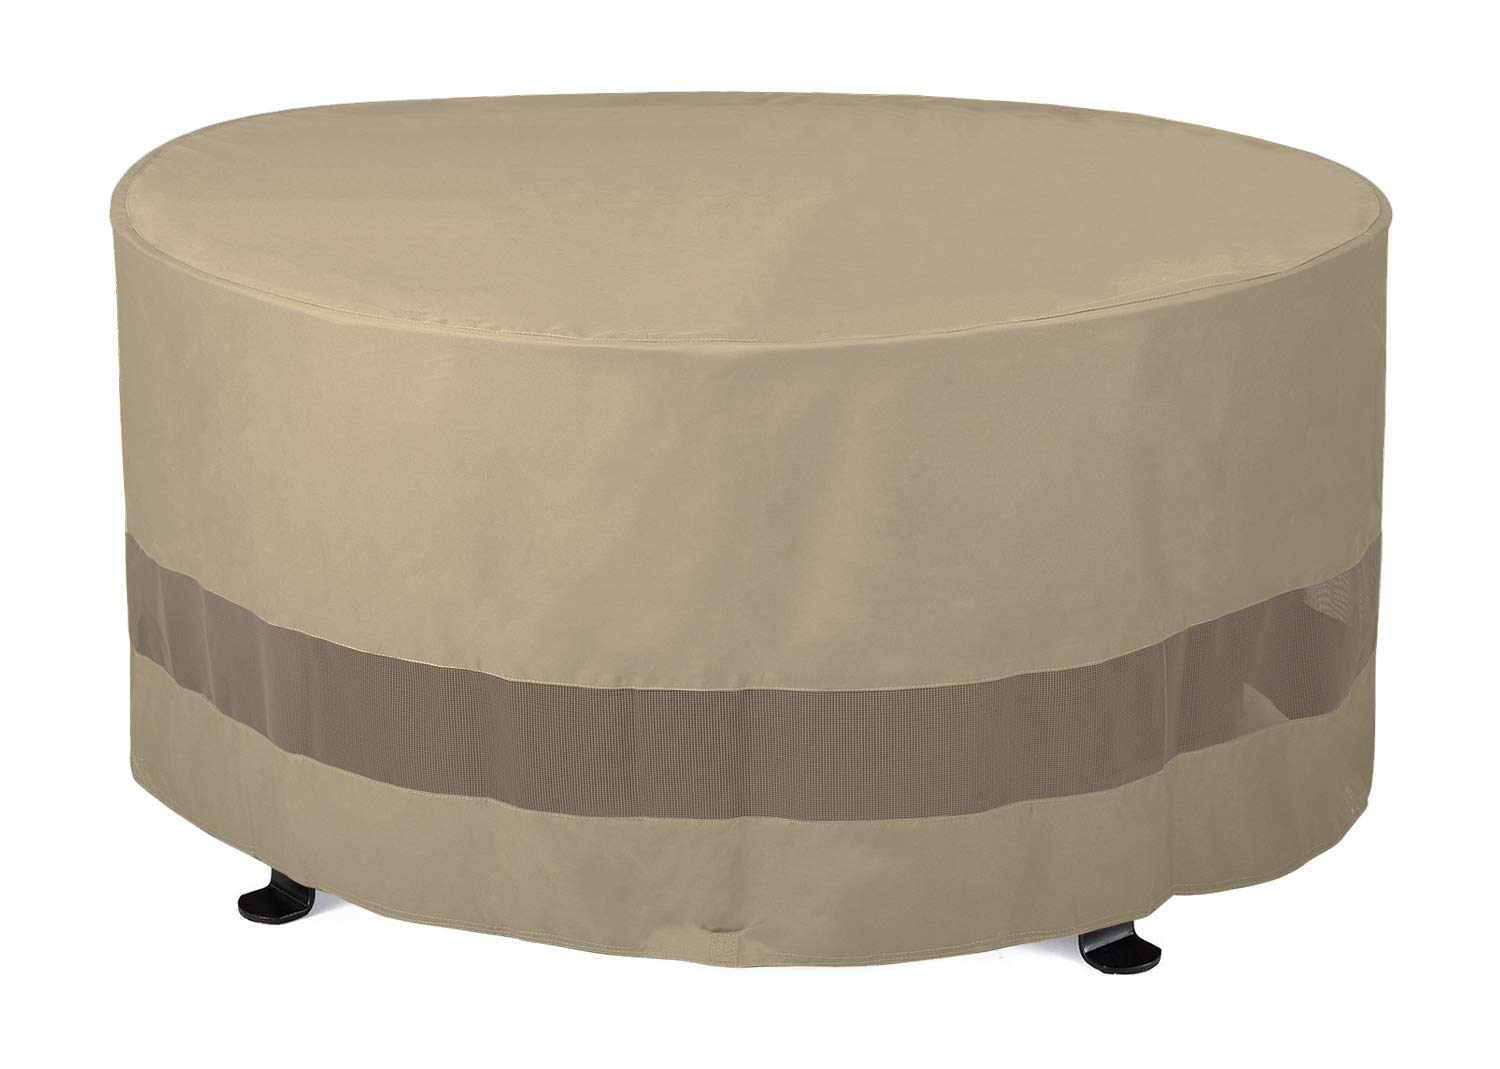 """SunPatio Outdoor Fire Pit Cover, Patio Ottoman Cover, Round Table Cover 50""""Dia x 24""""H, Water Resistant, Lightweight, Eco-Friendly Furniture Cover with Velcro Ties and Mesh Air Vents, Neutral Taupe"""